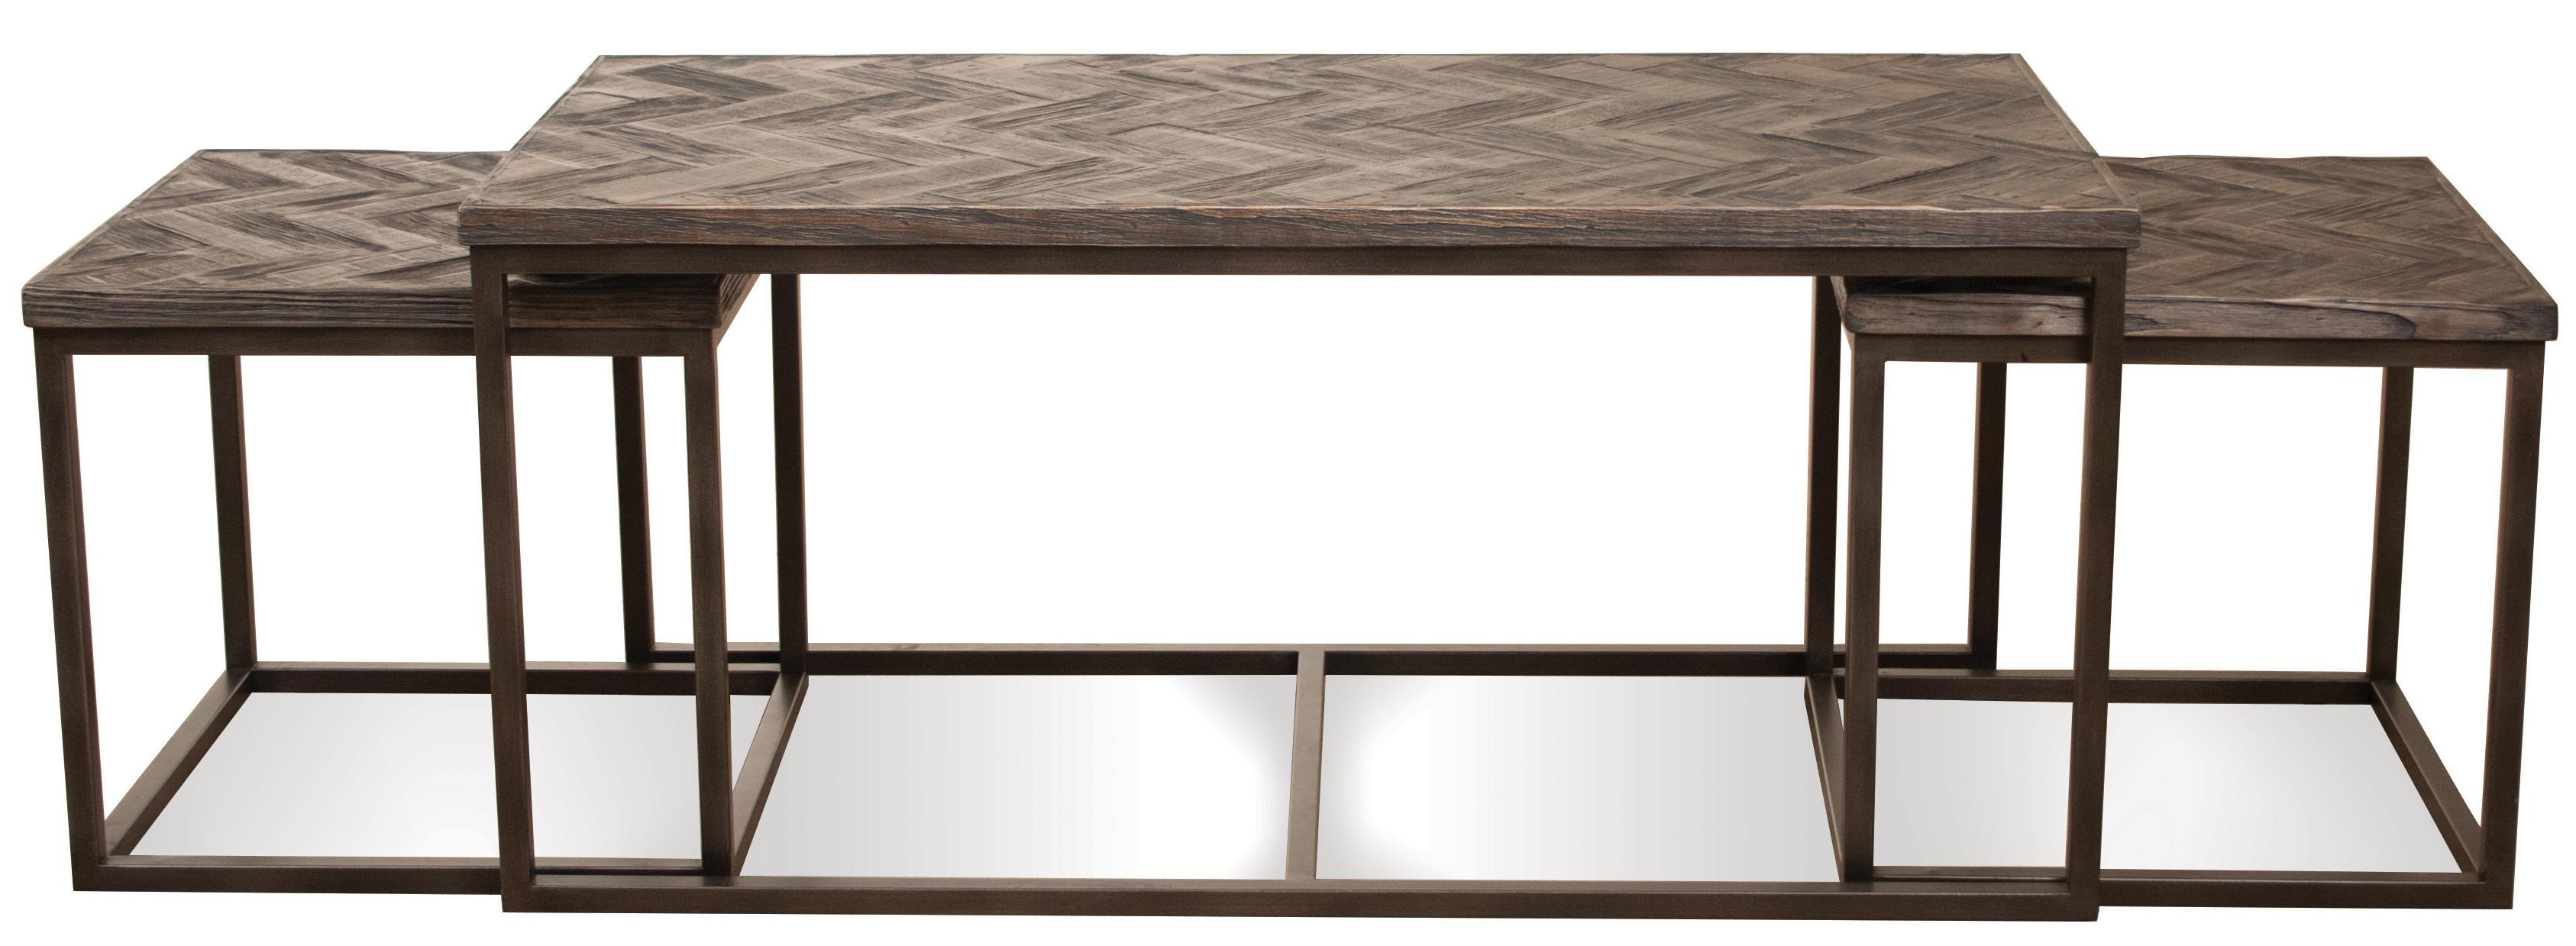 3 Pc Rectangular Nesting Coffee Table by Riverside Furniture